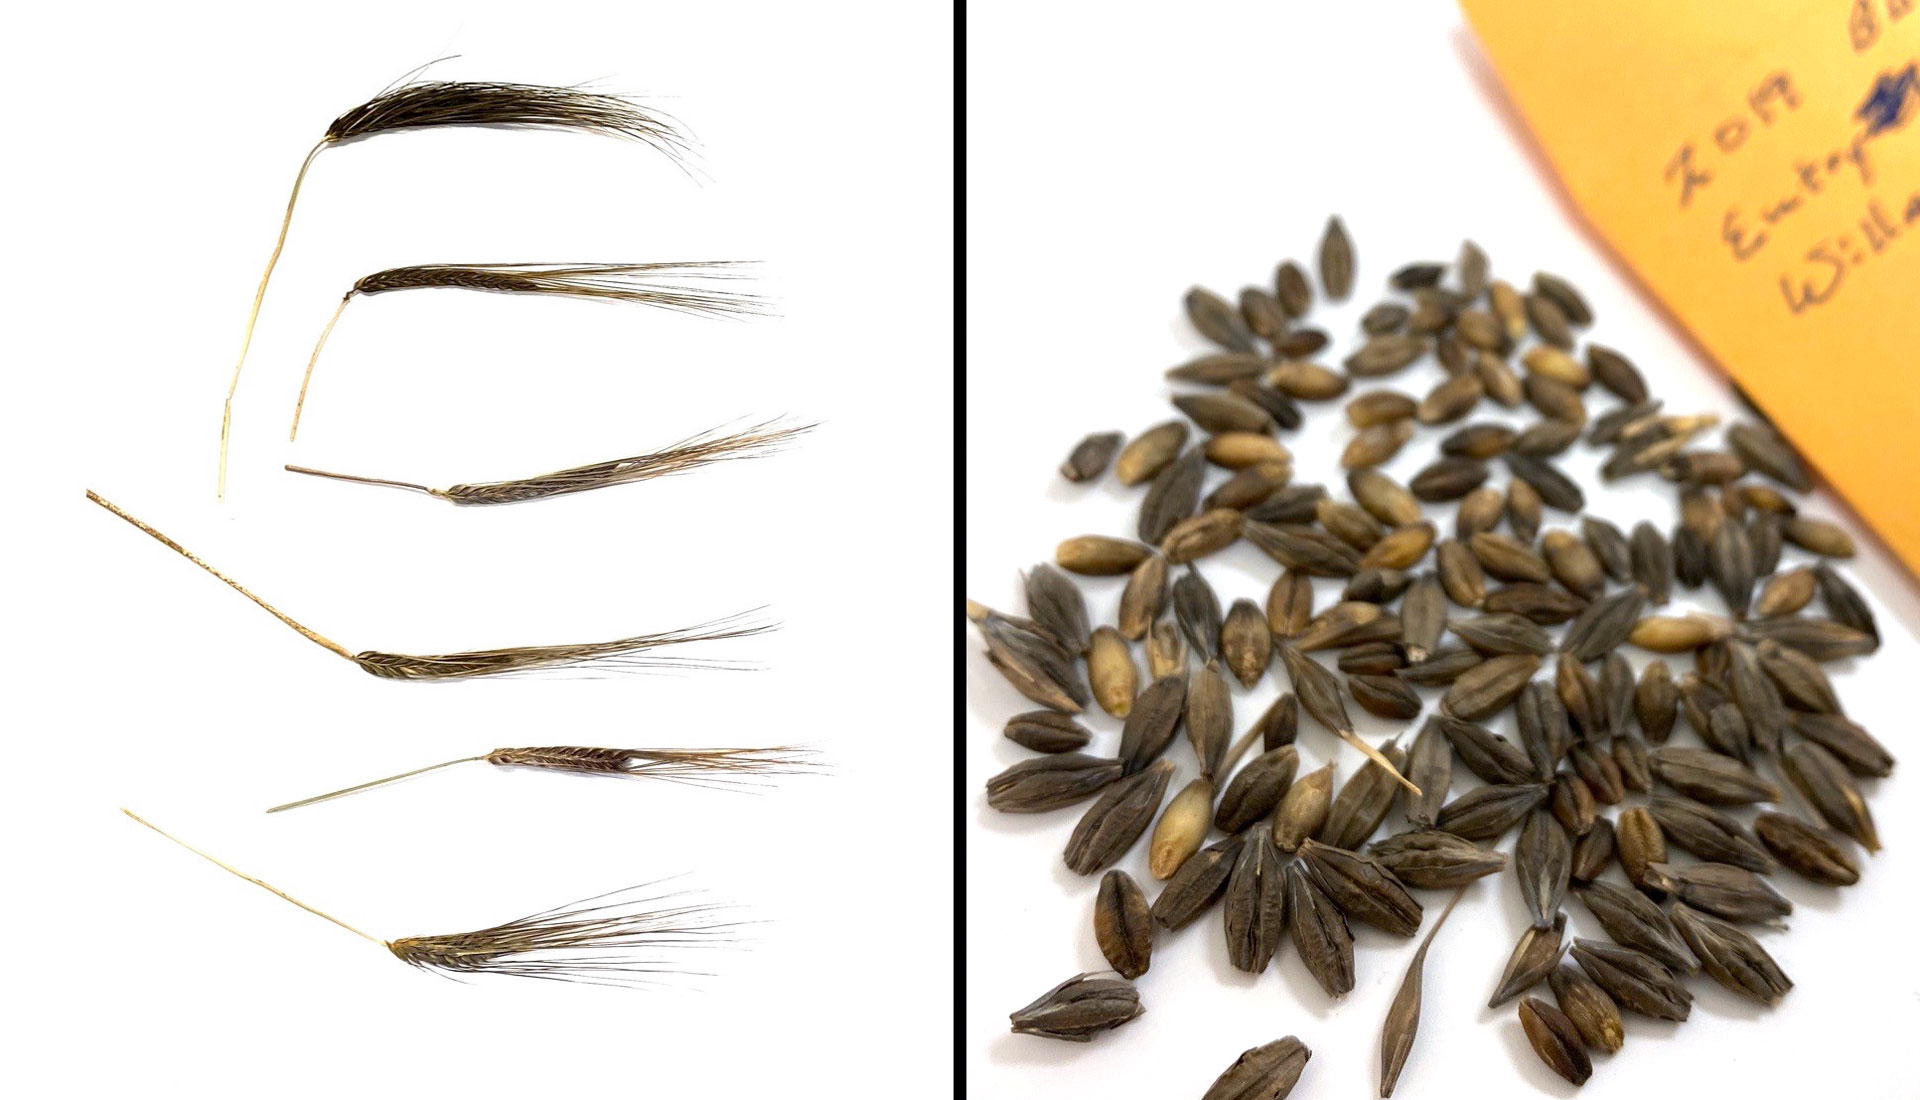 Black barley heads (left) and seeds (right).